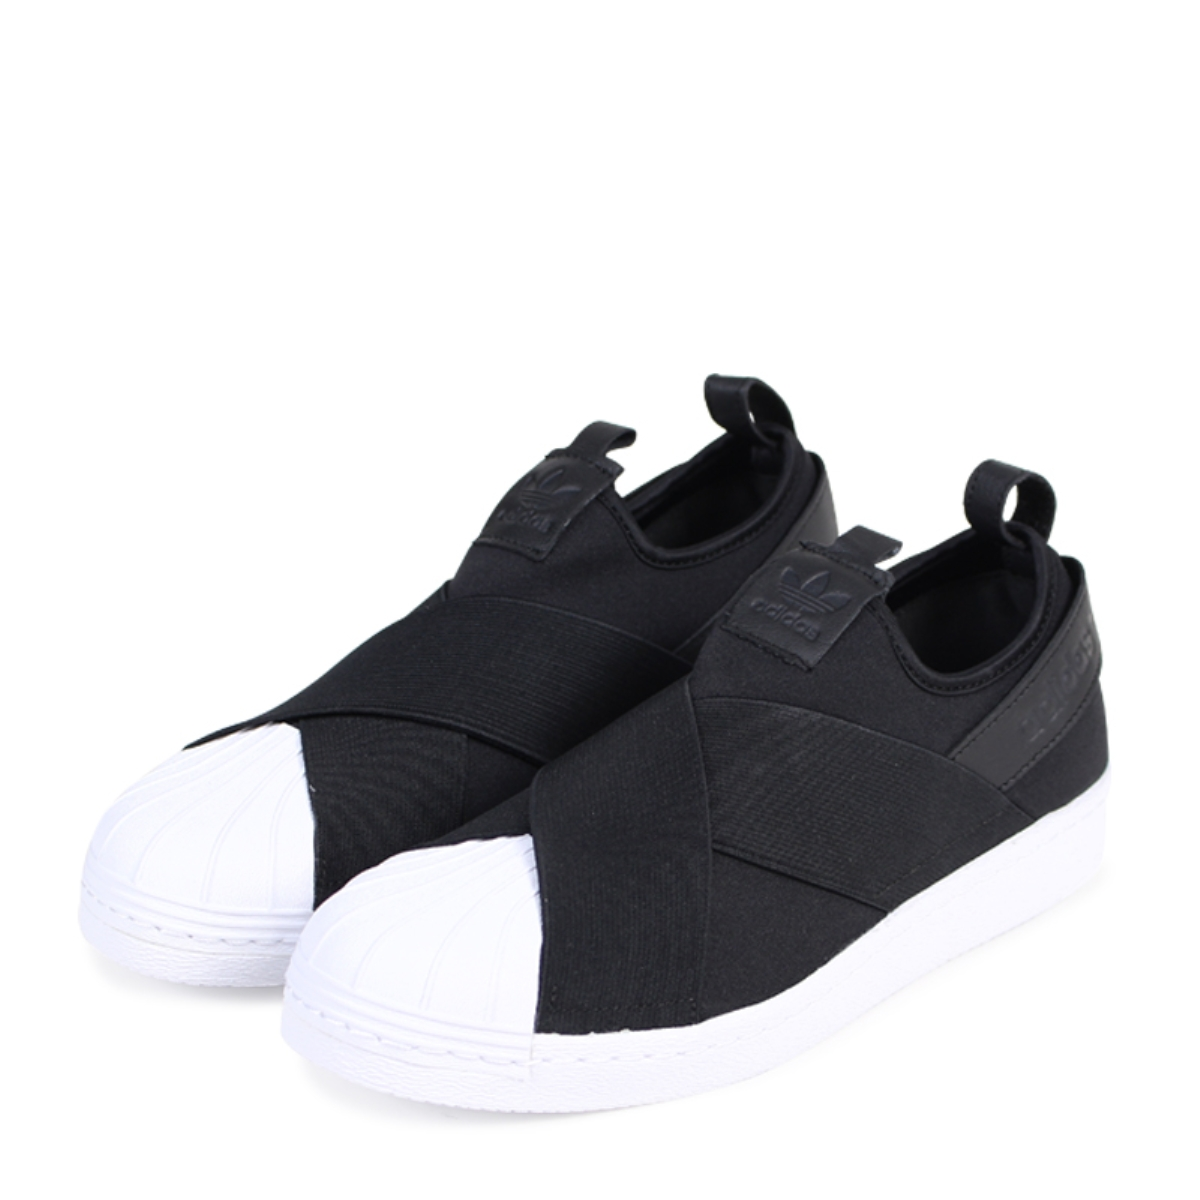 buy popular 8d6a5 8e357 adidas Originals SUPERSTAR SLIP-ON Adidas superstar sneakers slip-ons men  gap Dis BZ0112 black originals [1/30 Shinnyu load] [181]